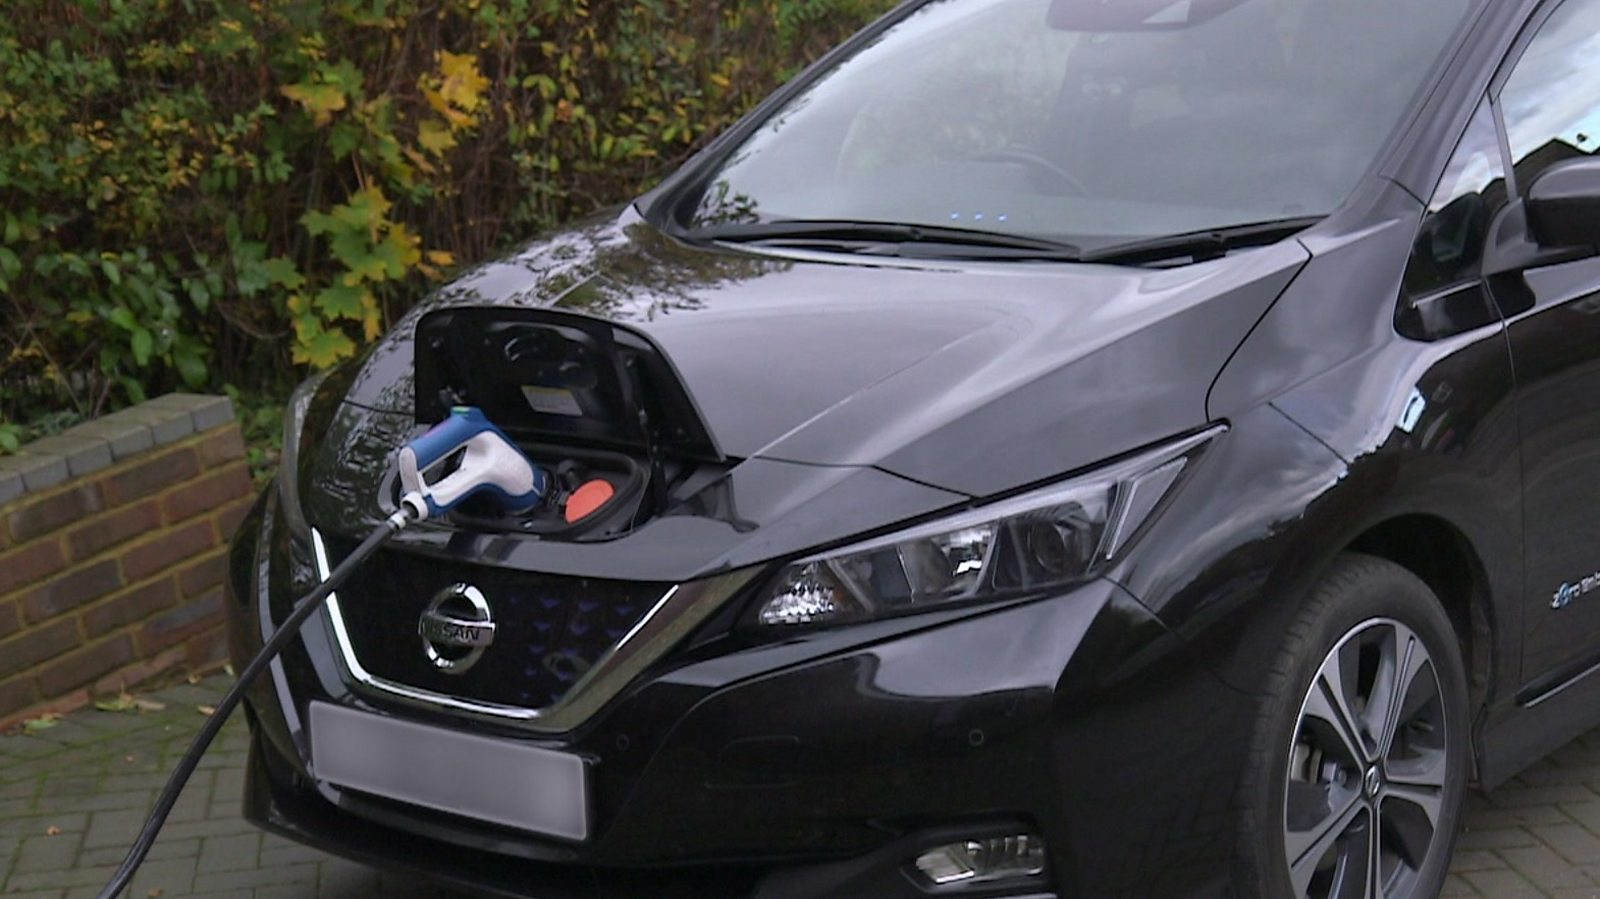 'How my electric car is helping to power my home'